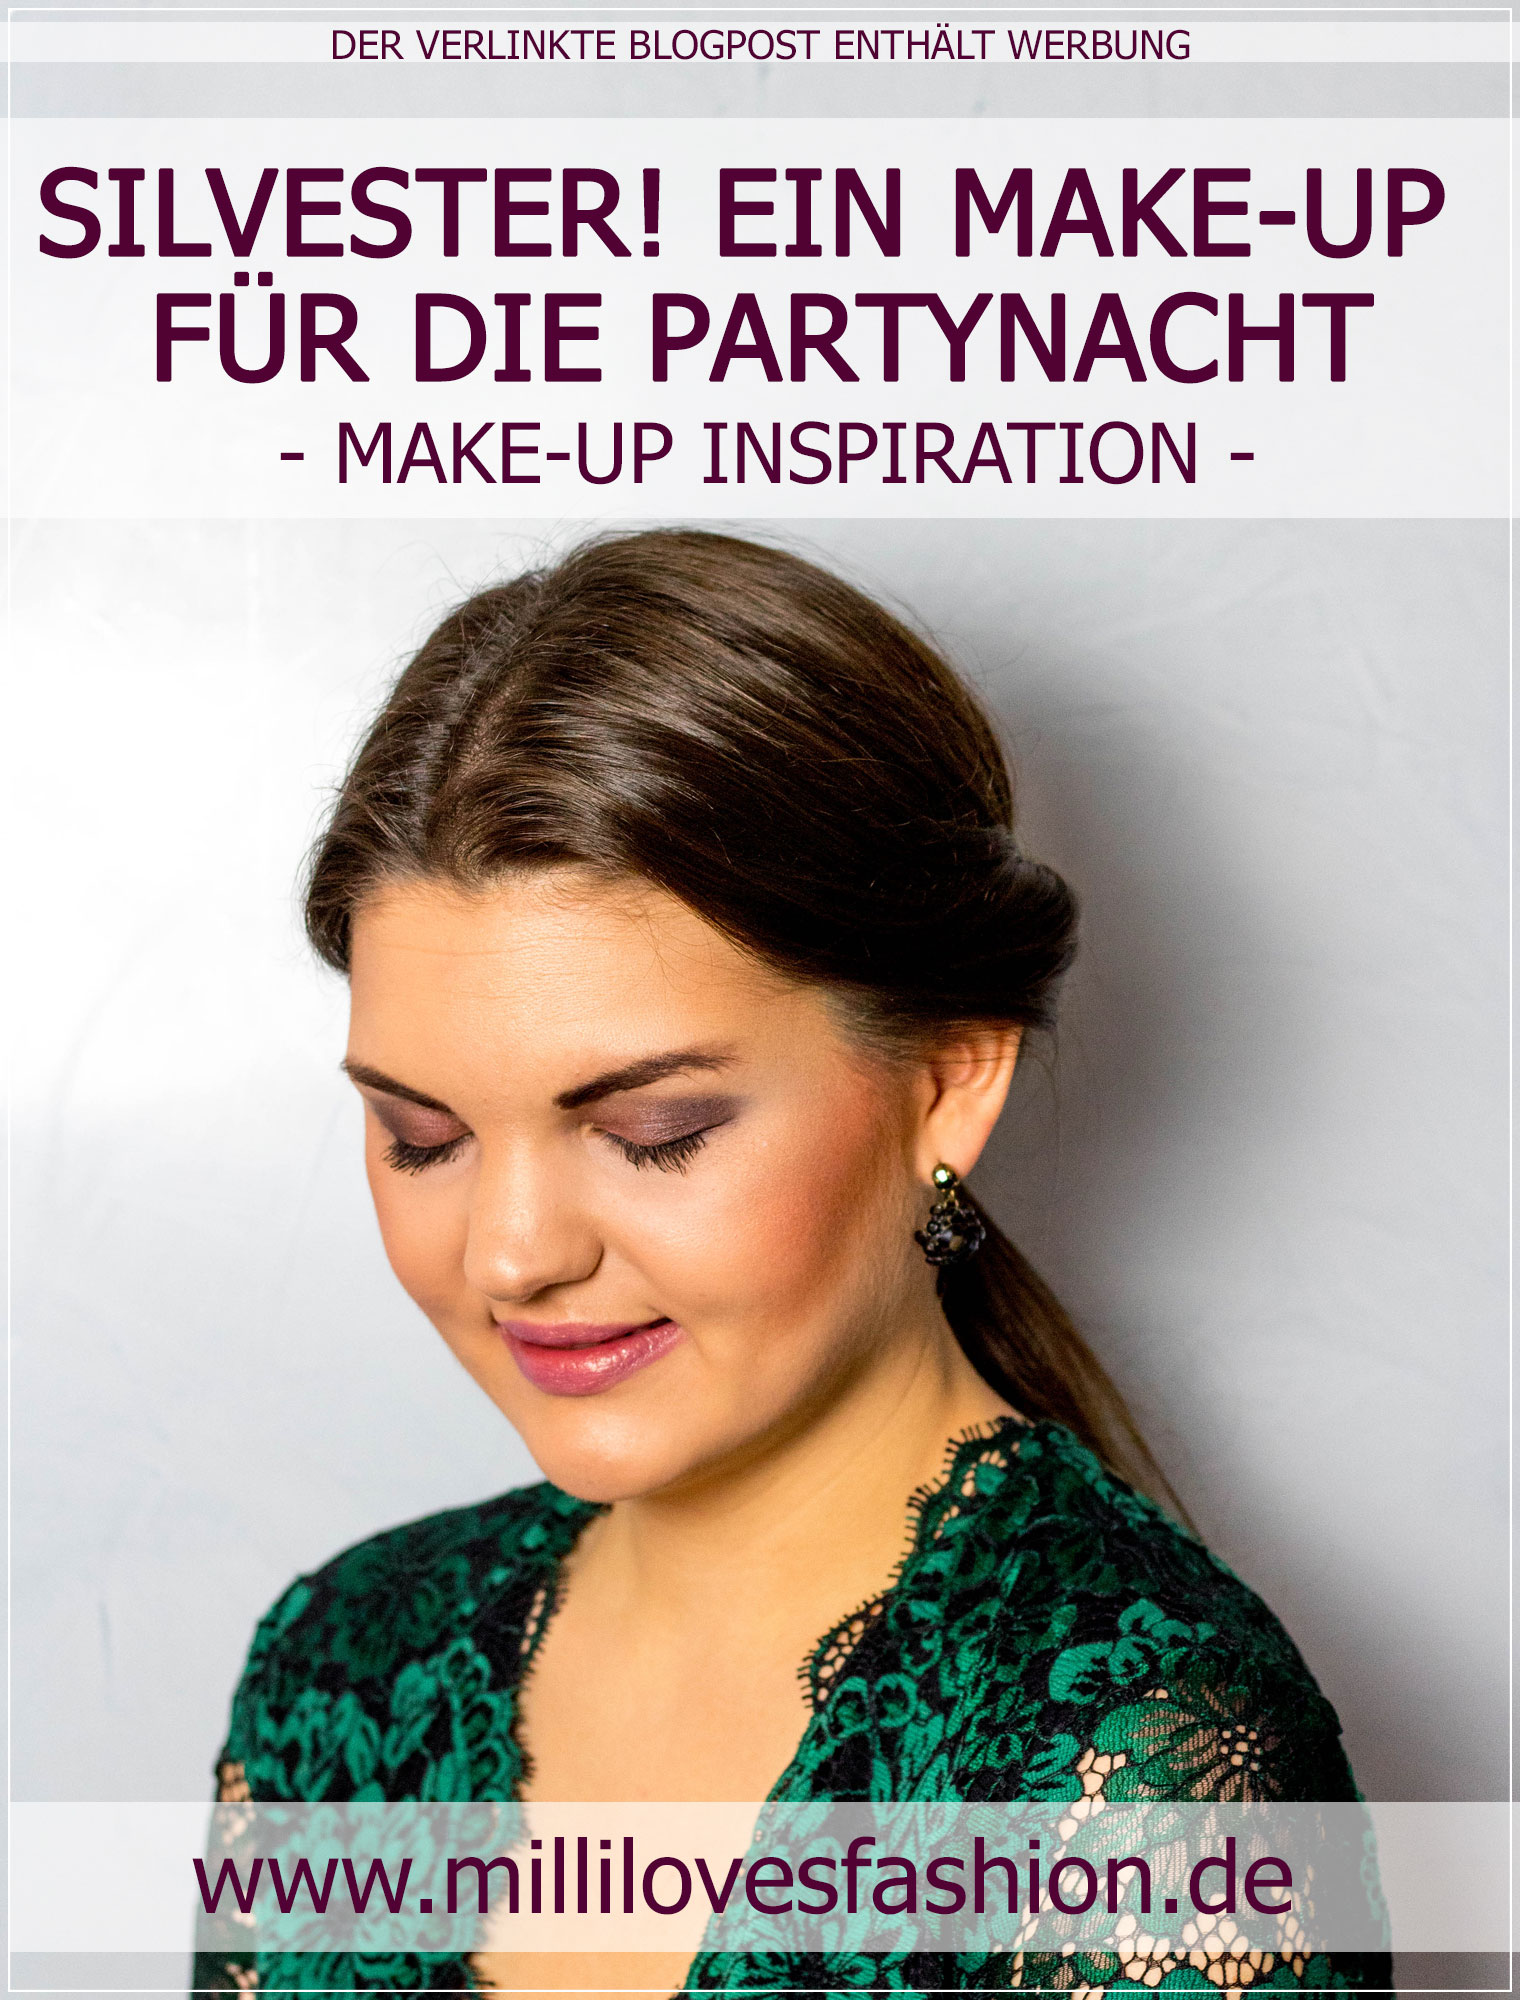 Silvester-Make-Up, Party-Make-Up, Abend-Make-Up, Smokey Eyes, Make-Up Tutorial, Beauty Blog, Beautybloggerin, Ruhrgebiet